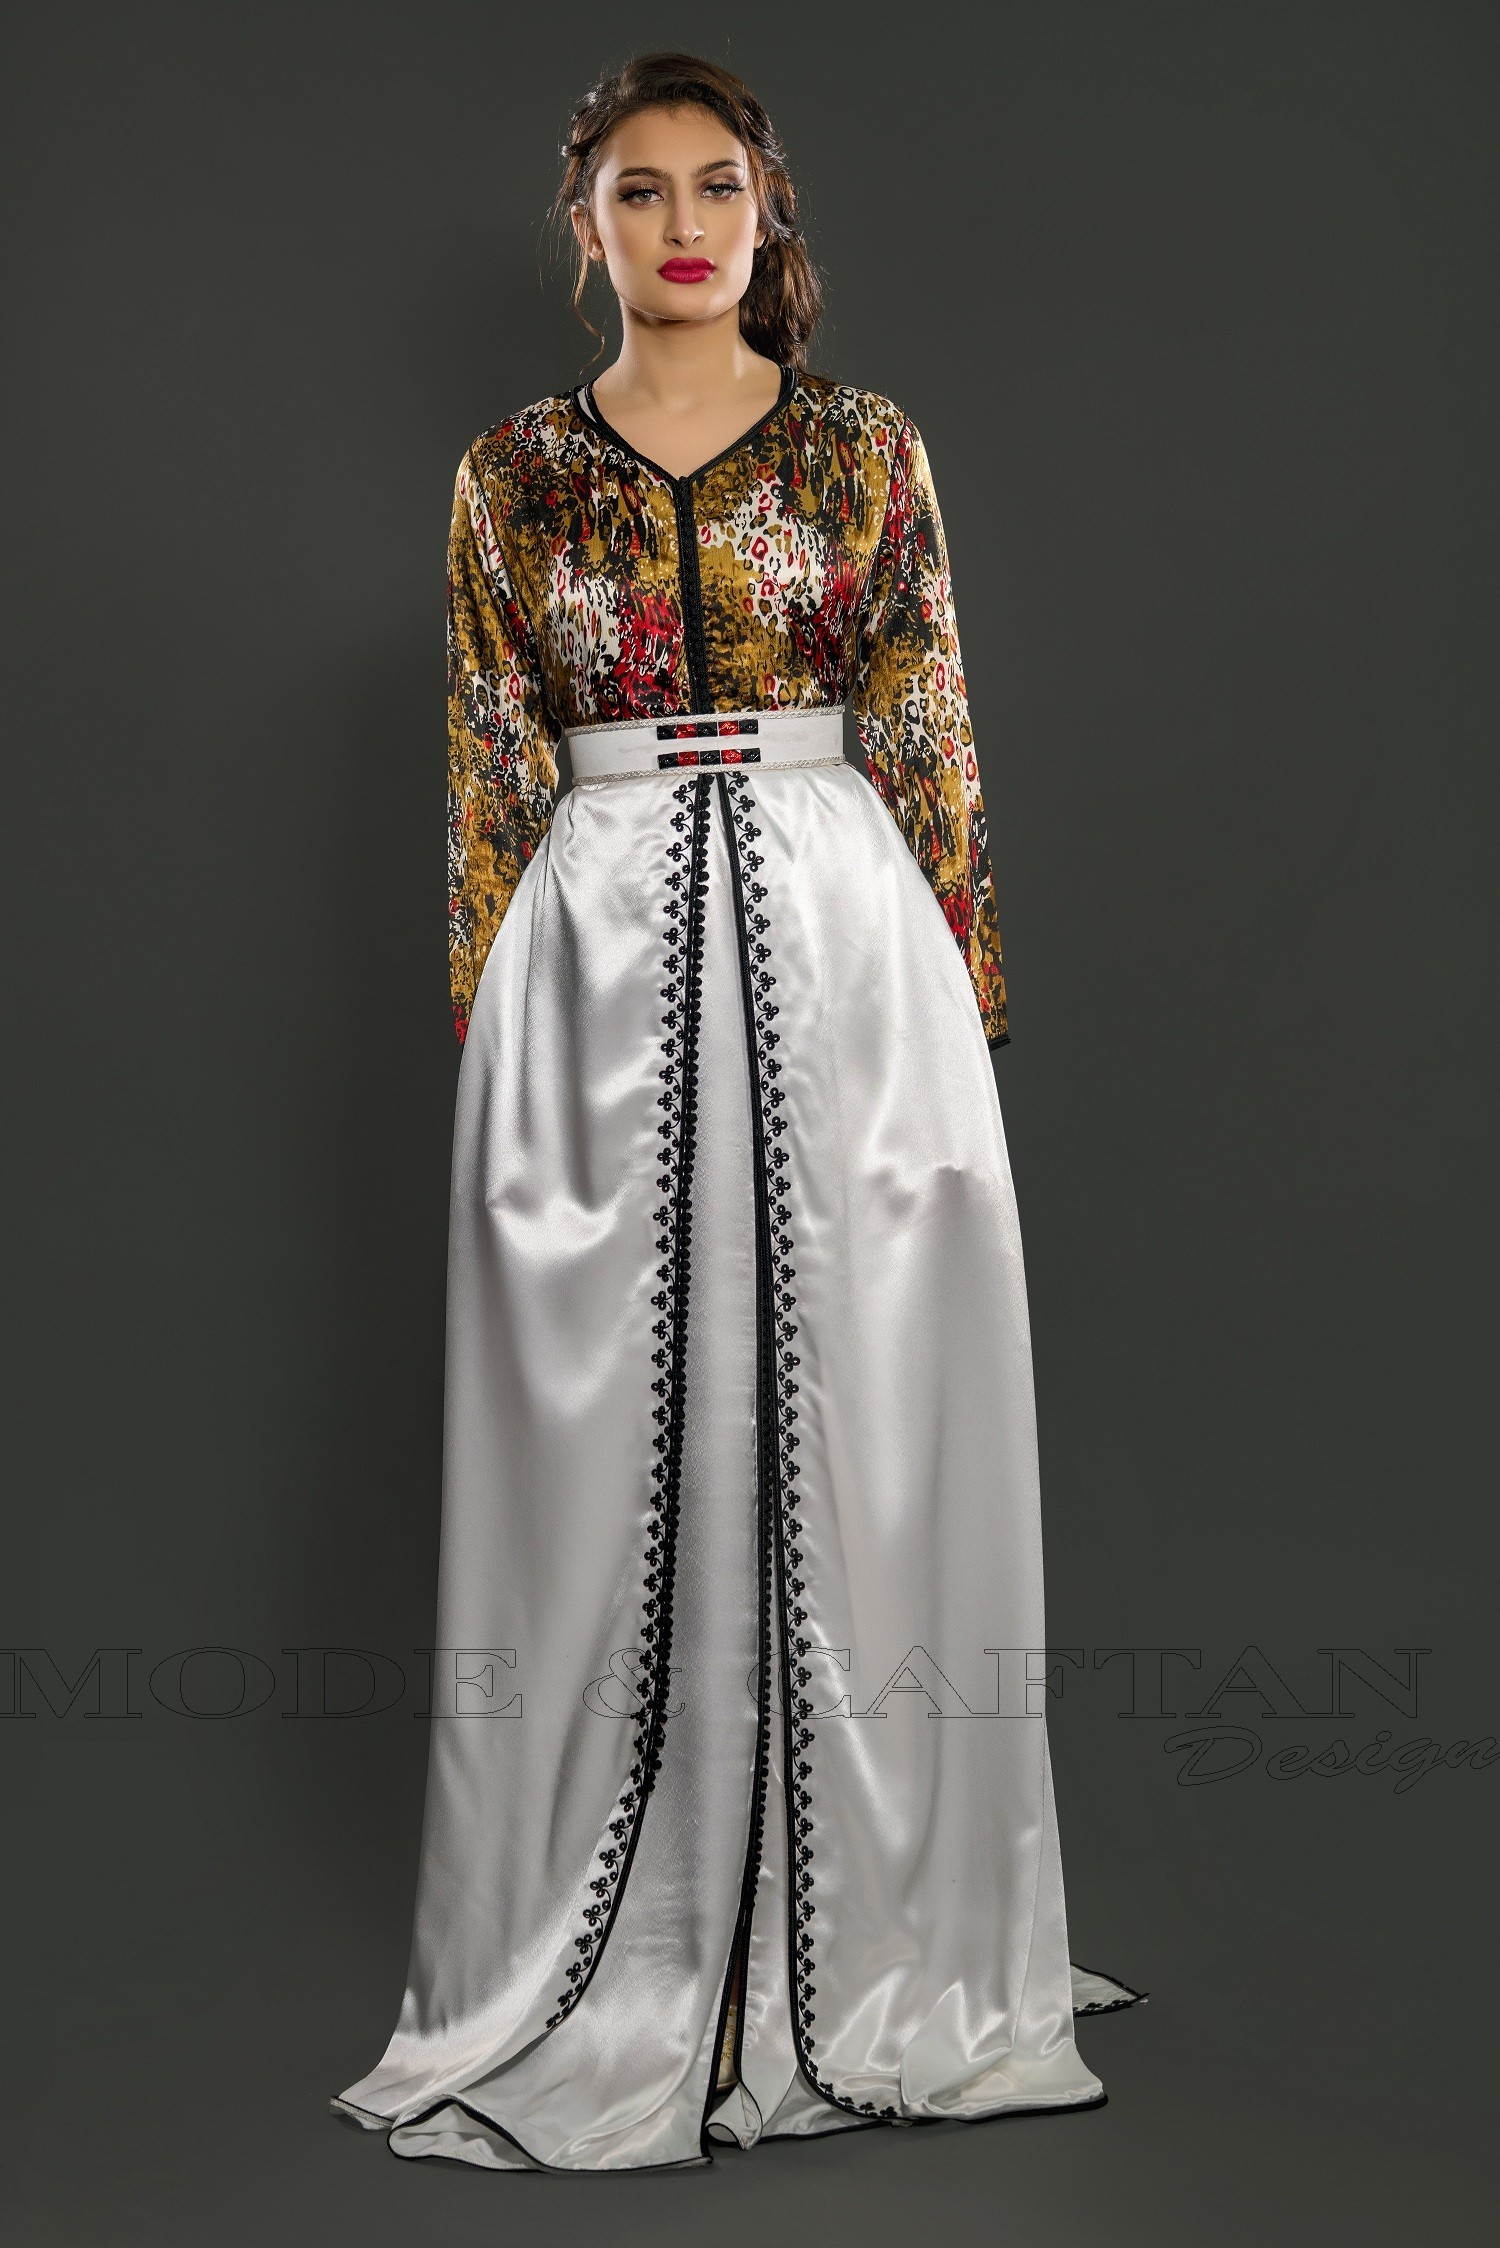 Elegant Kaftan Sewing On Sale Fast Delivery In Usa And Uk